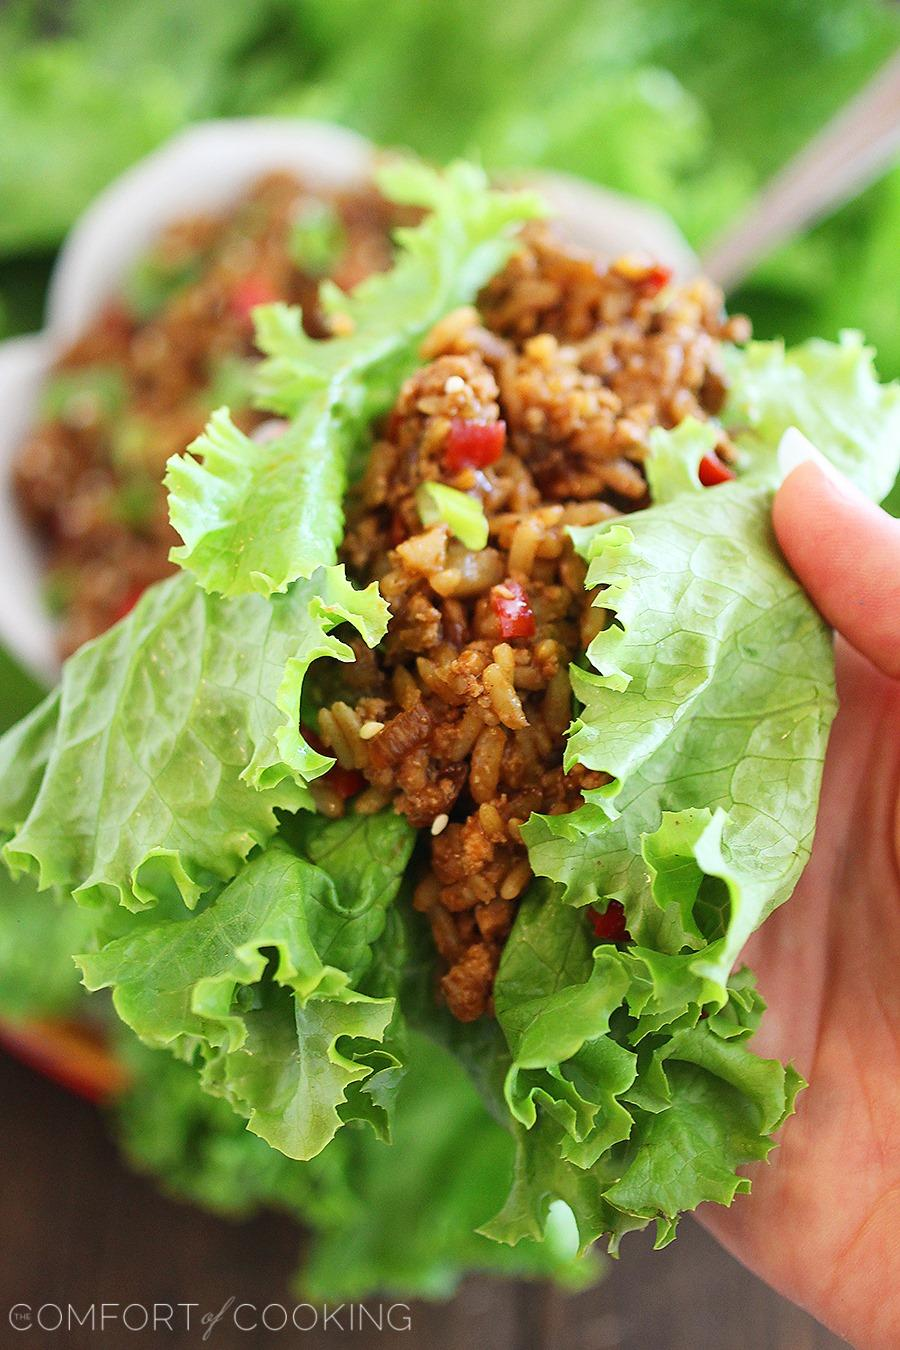 http://www.thecomfortofcooking.com/2013/09/slow-cooker-asian-chicken-lettuce-wraps.html